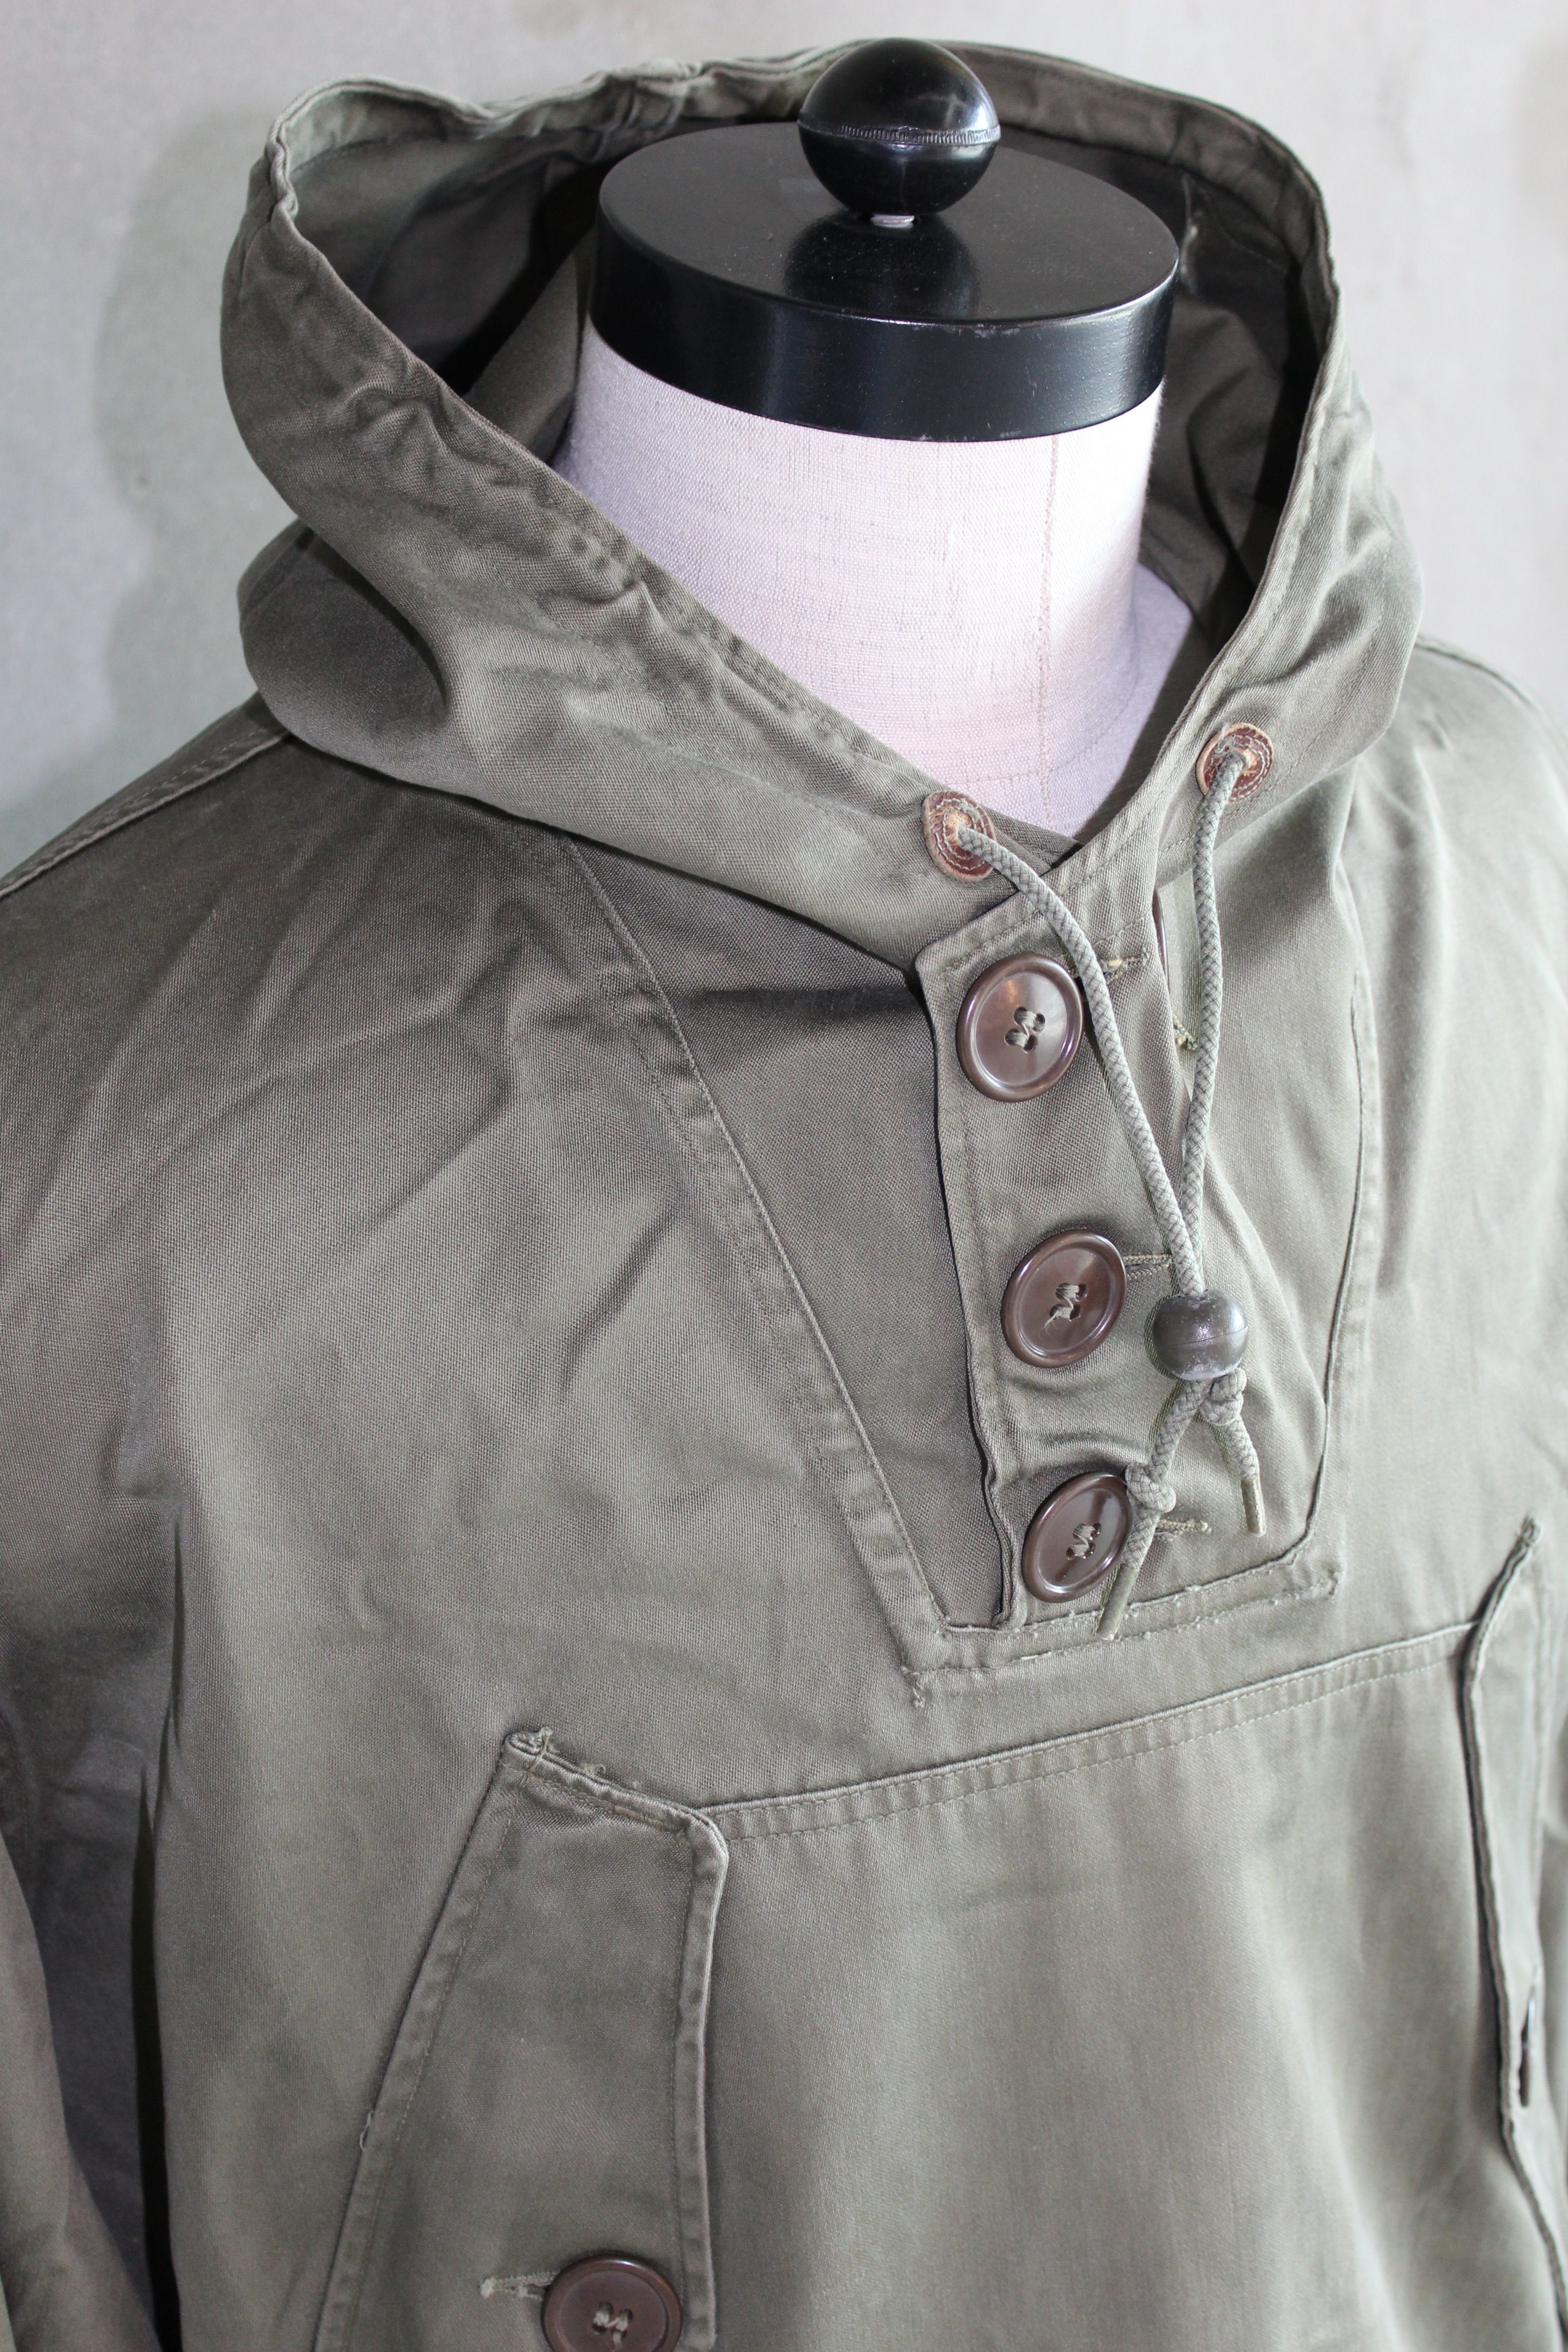 a10cc14b42ef2 Detail, US army M43 parka, dated 1948. | Vintage (Military) in 2019 ...